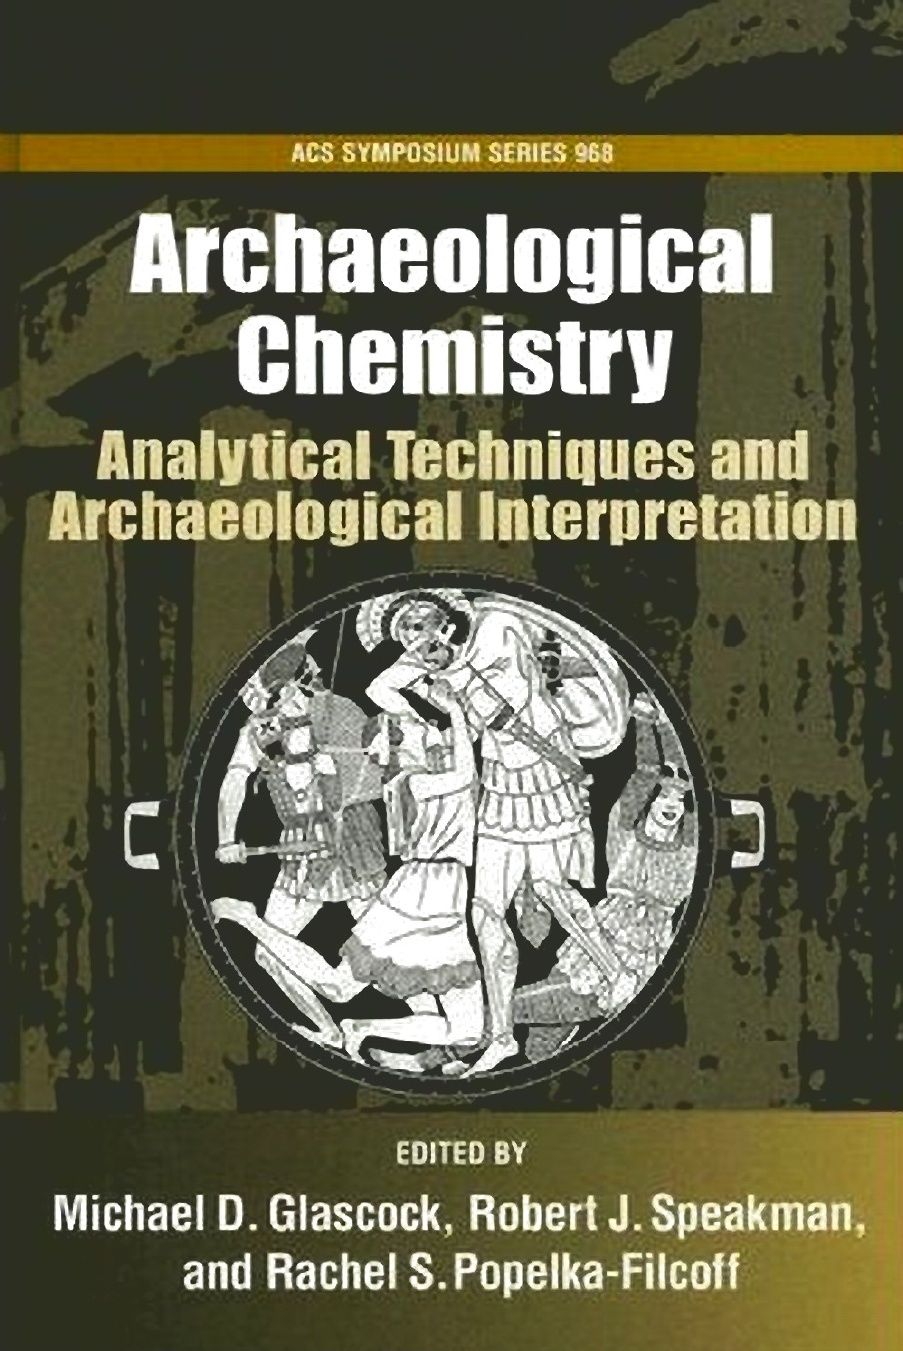 Archaeological Chemistry: Analytical Techniques and Archaeological Interpretation